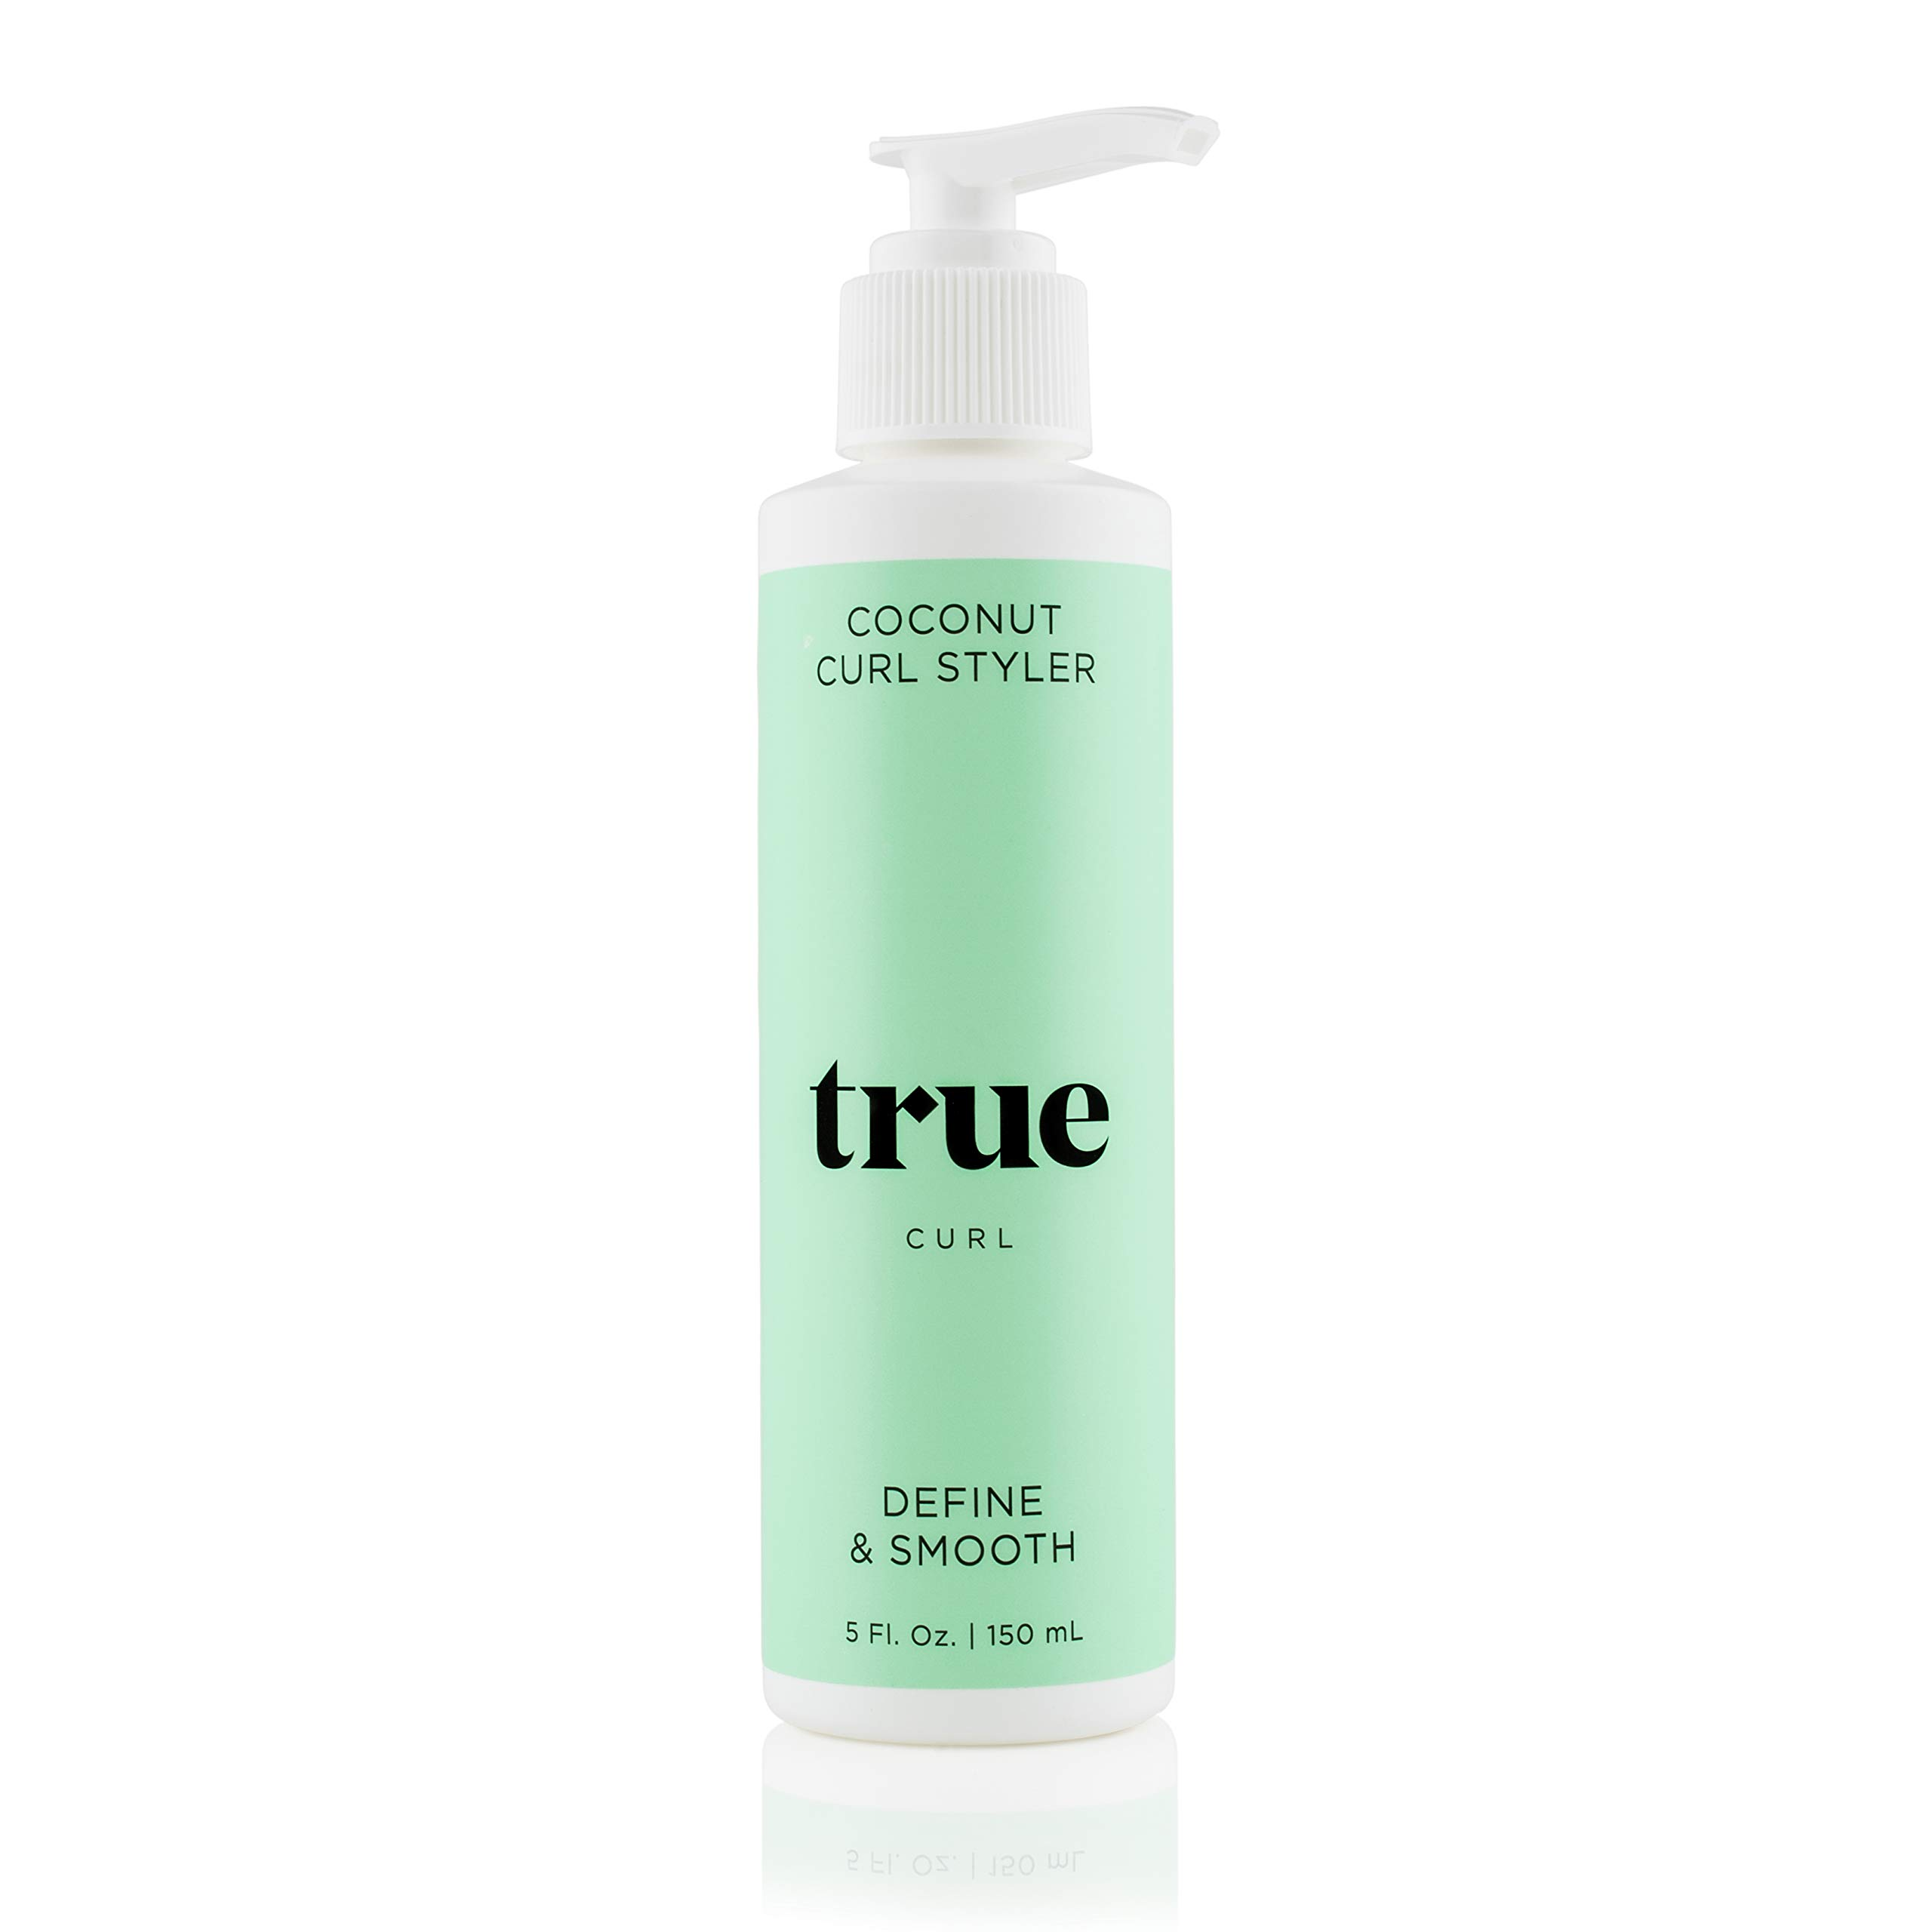 True Curl Coconut Styling Cream. Vegan, Cruelty Free, Define and Smooth for Frizz-Free Wavy, Curly Hair. Silicone, Sulfate and Paraben-Free, 5 Fl Oz.